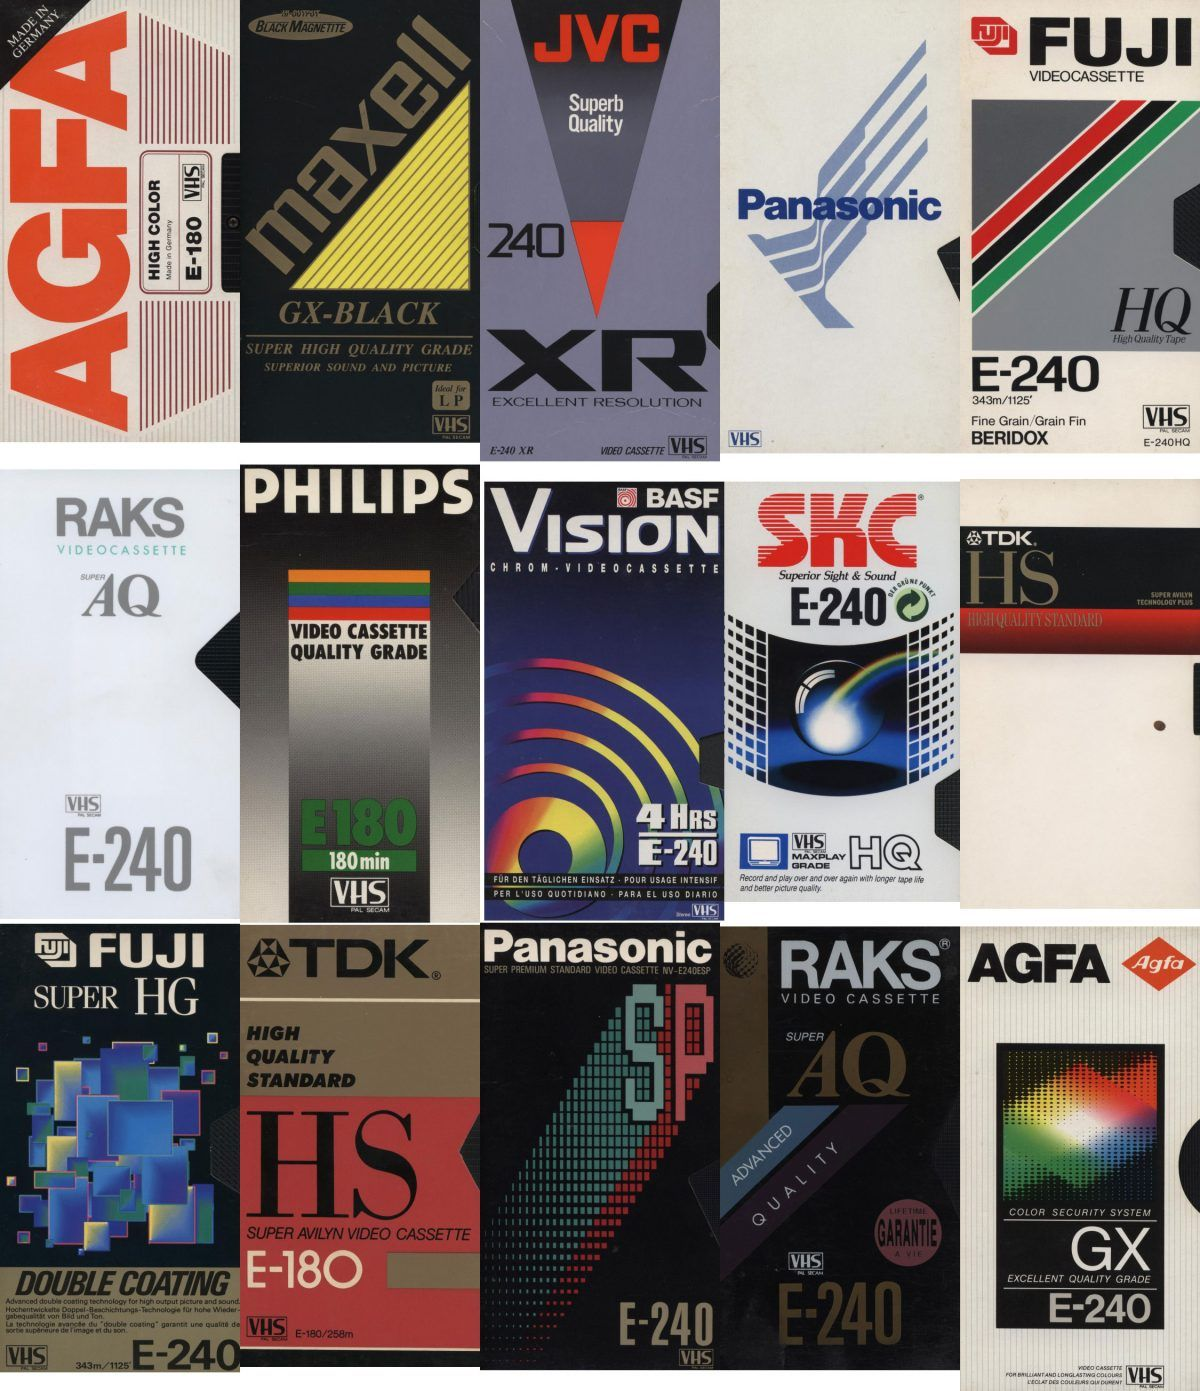 Blank Vhs Cassette Packaging Design Trends A Lost Art Flashbak In 2020 Vhs Cassette Packaging Design Packaging Design Trends